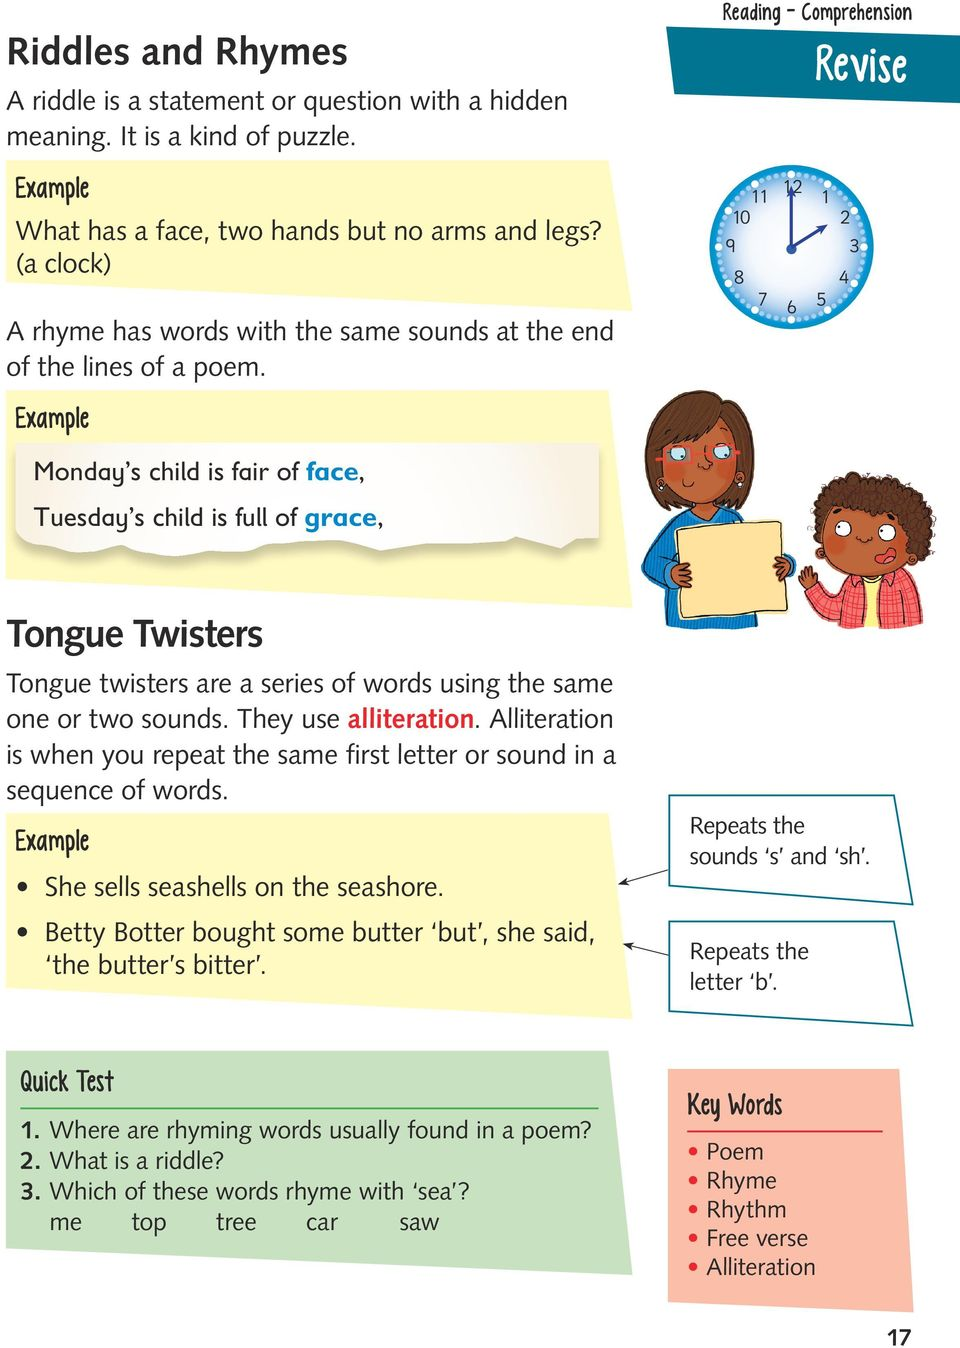 Reading - Comprehension 11 10 9 8 7 12 6 Revise 1 2 3 4 5 Monday s child is fair of face, Tuesday s child is full of grace, Tongue Twisters Tongue twisters are a series of words using the same one or